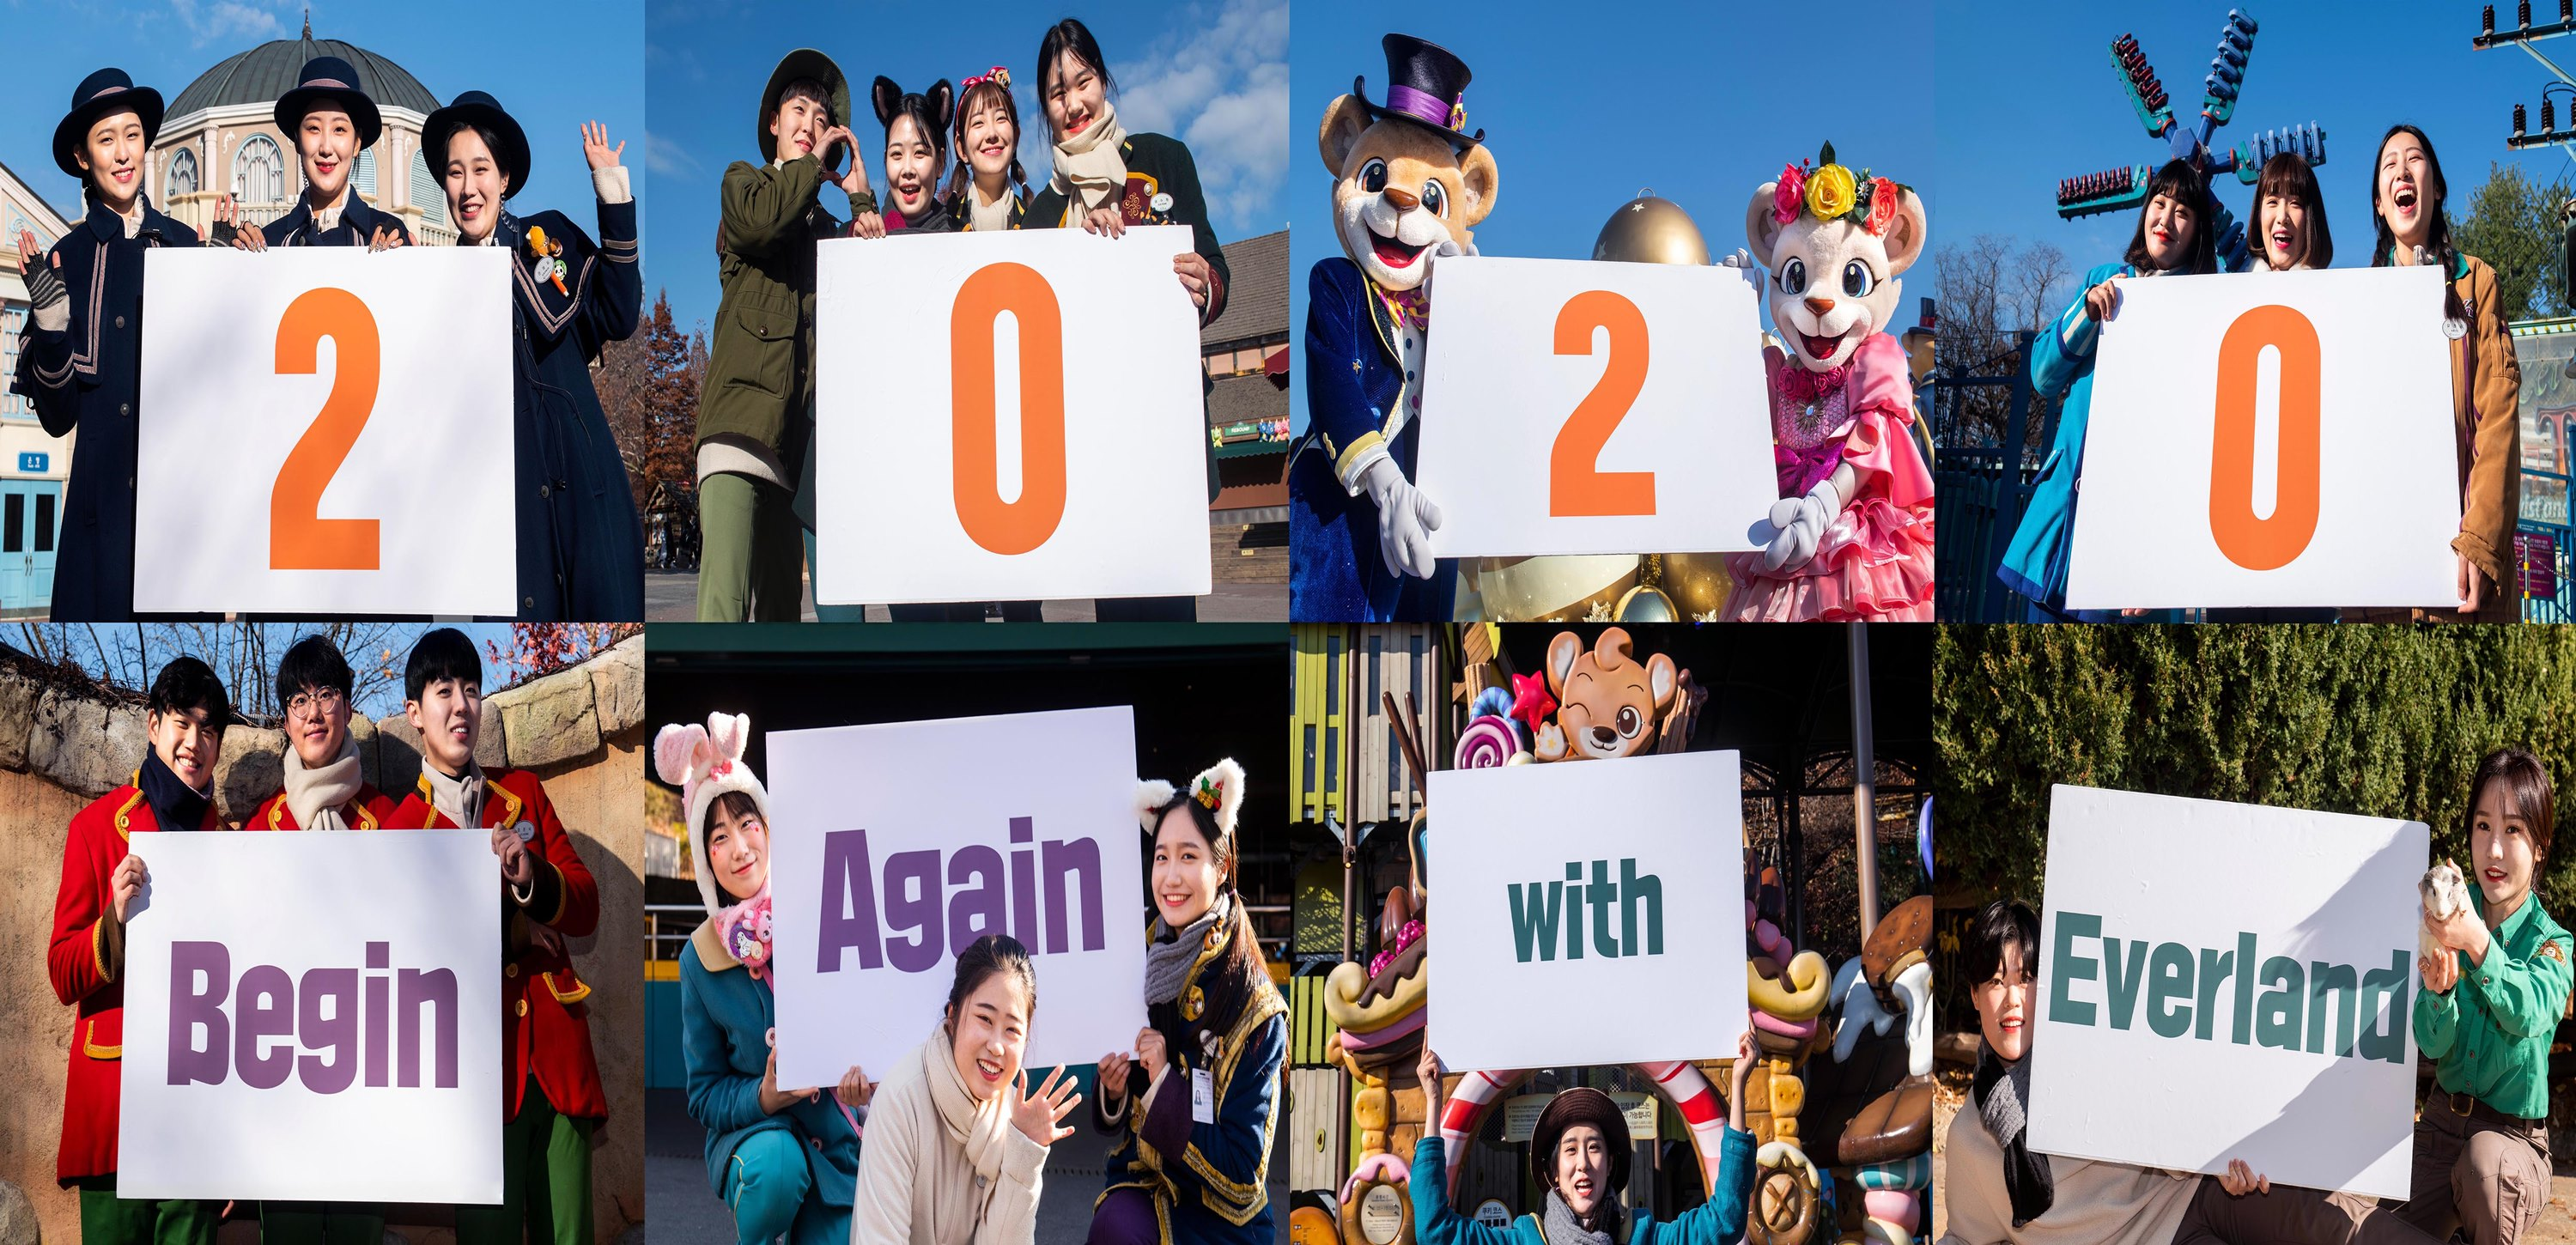 Everland is giving visitors the opportunity to begin again with numerous promotions and events until February.